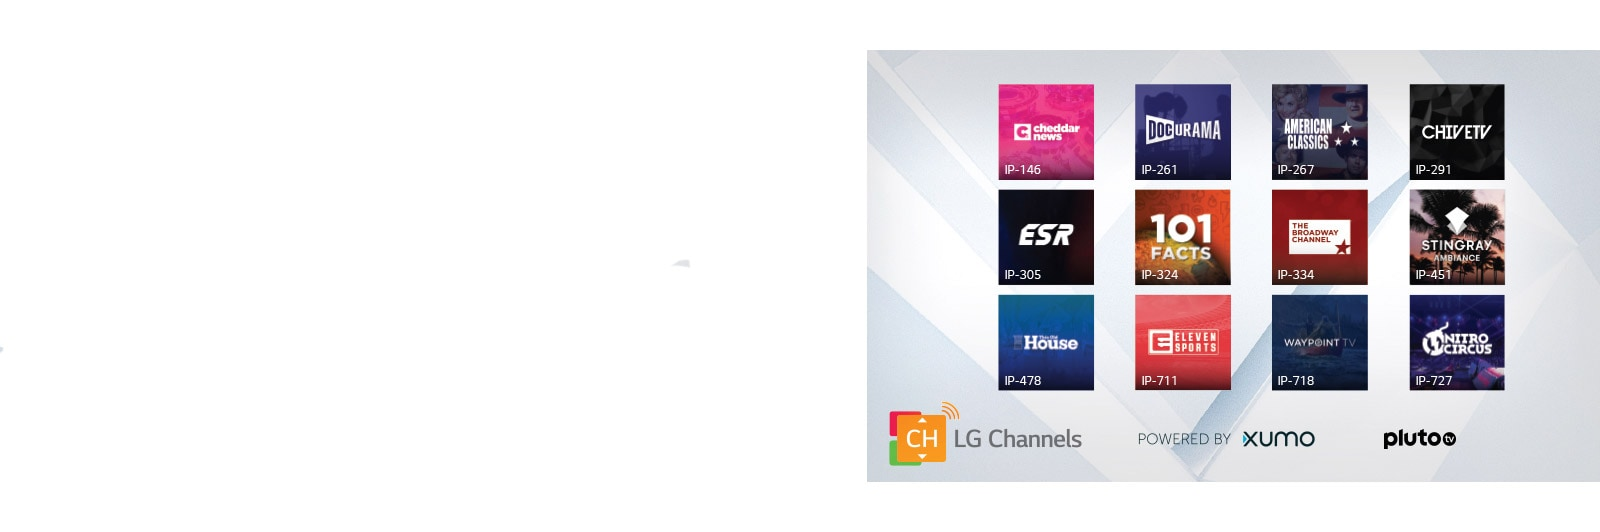 Thumbnails of LG Channel 12 titles